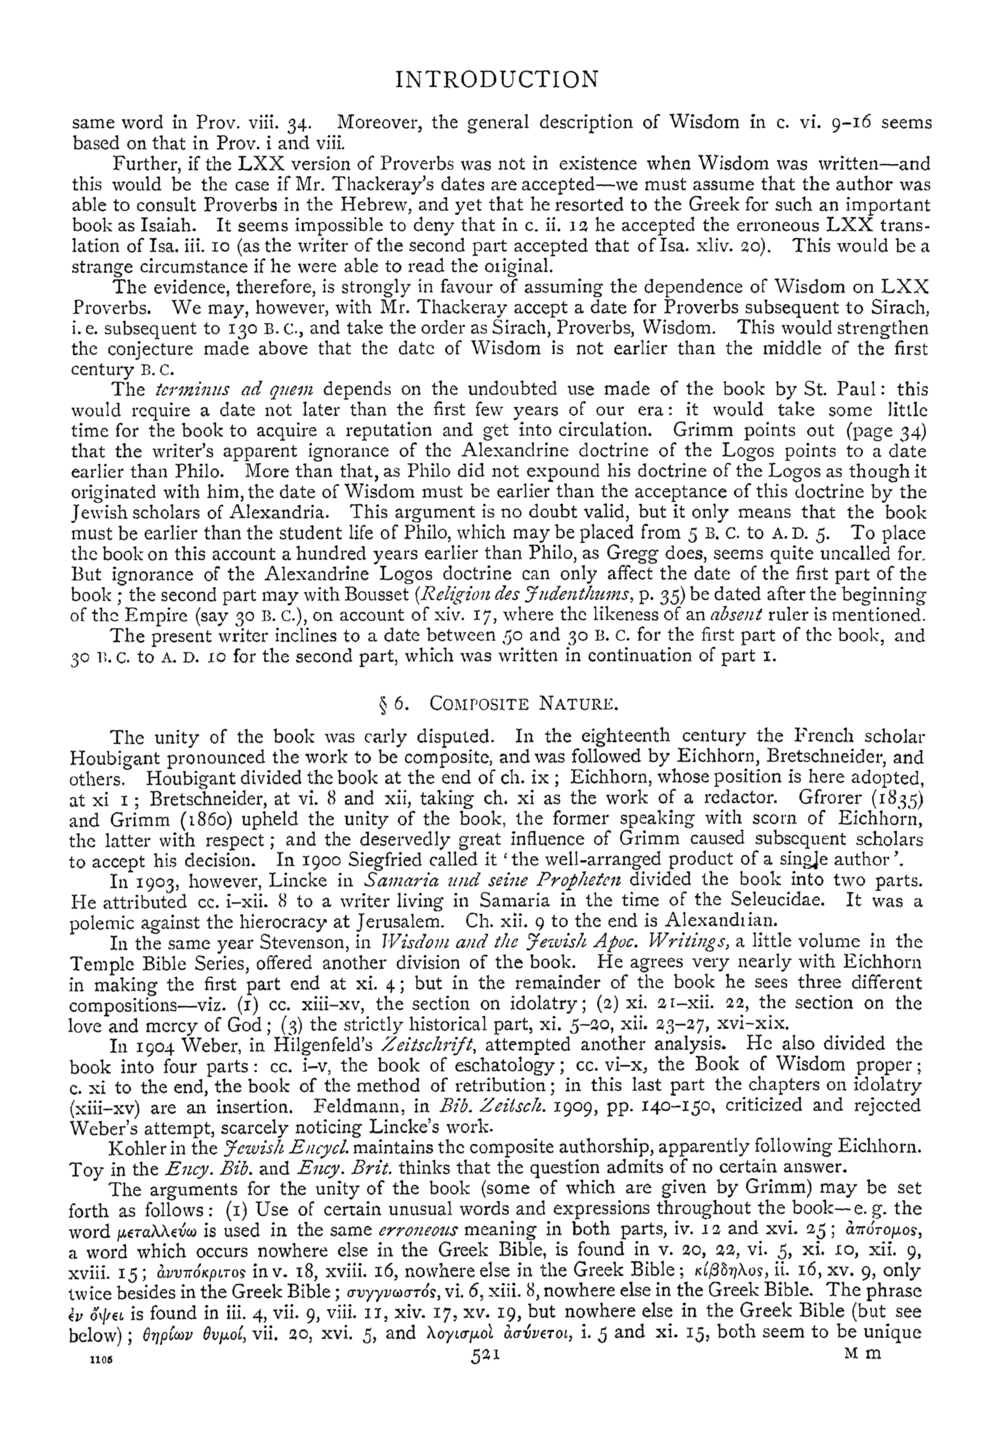 Image of page 521